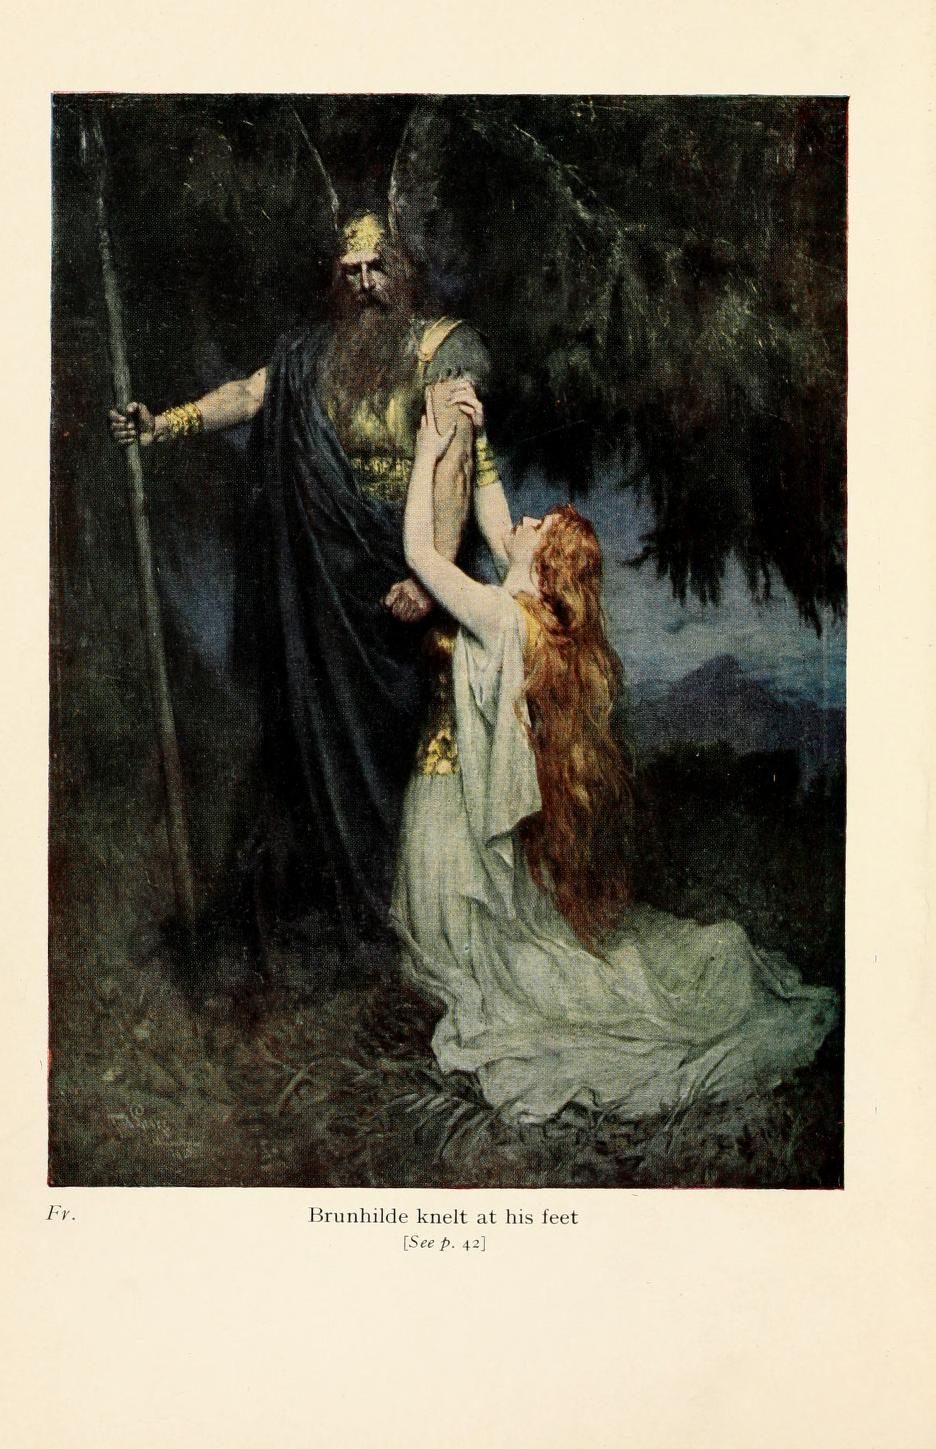 ferdinand leeke - brunhilde knelt at his feet (published in the ...